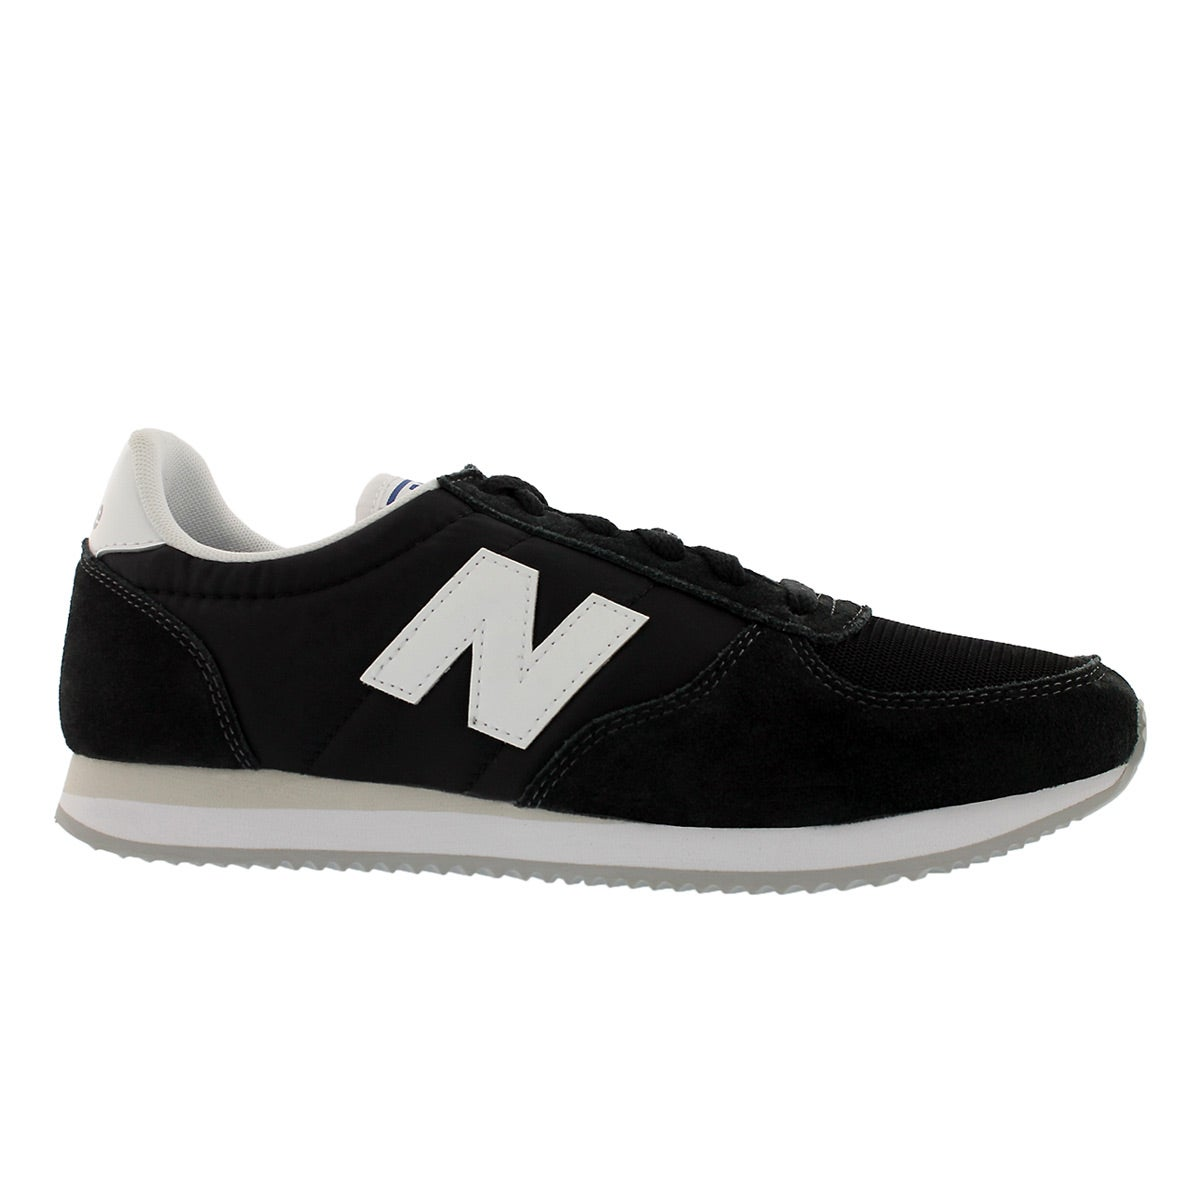 Mns 220 black/white lace up sneaker